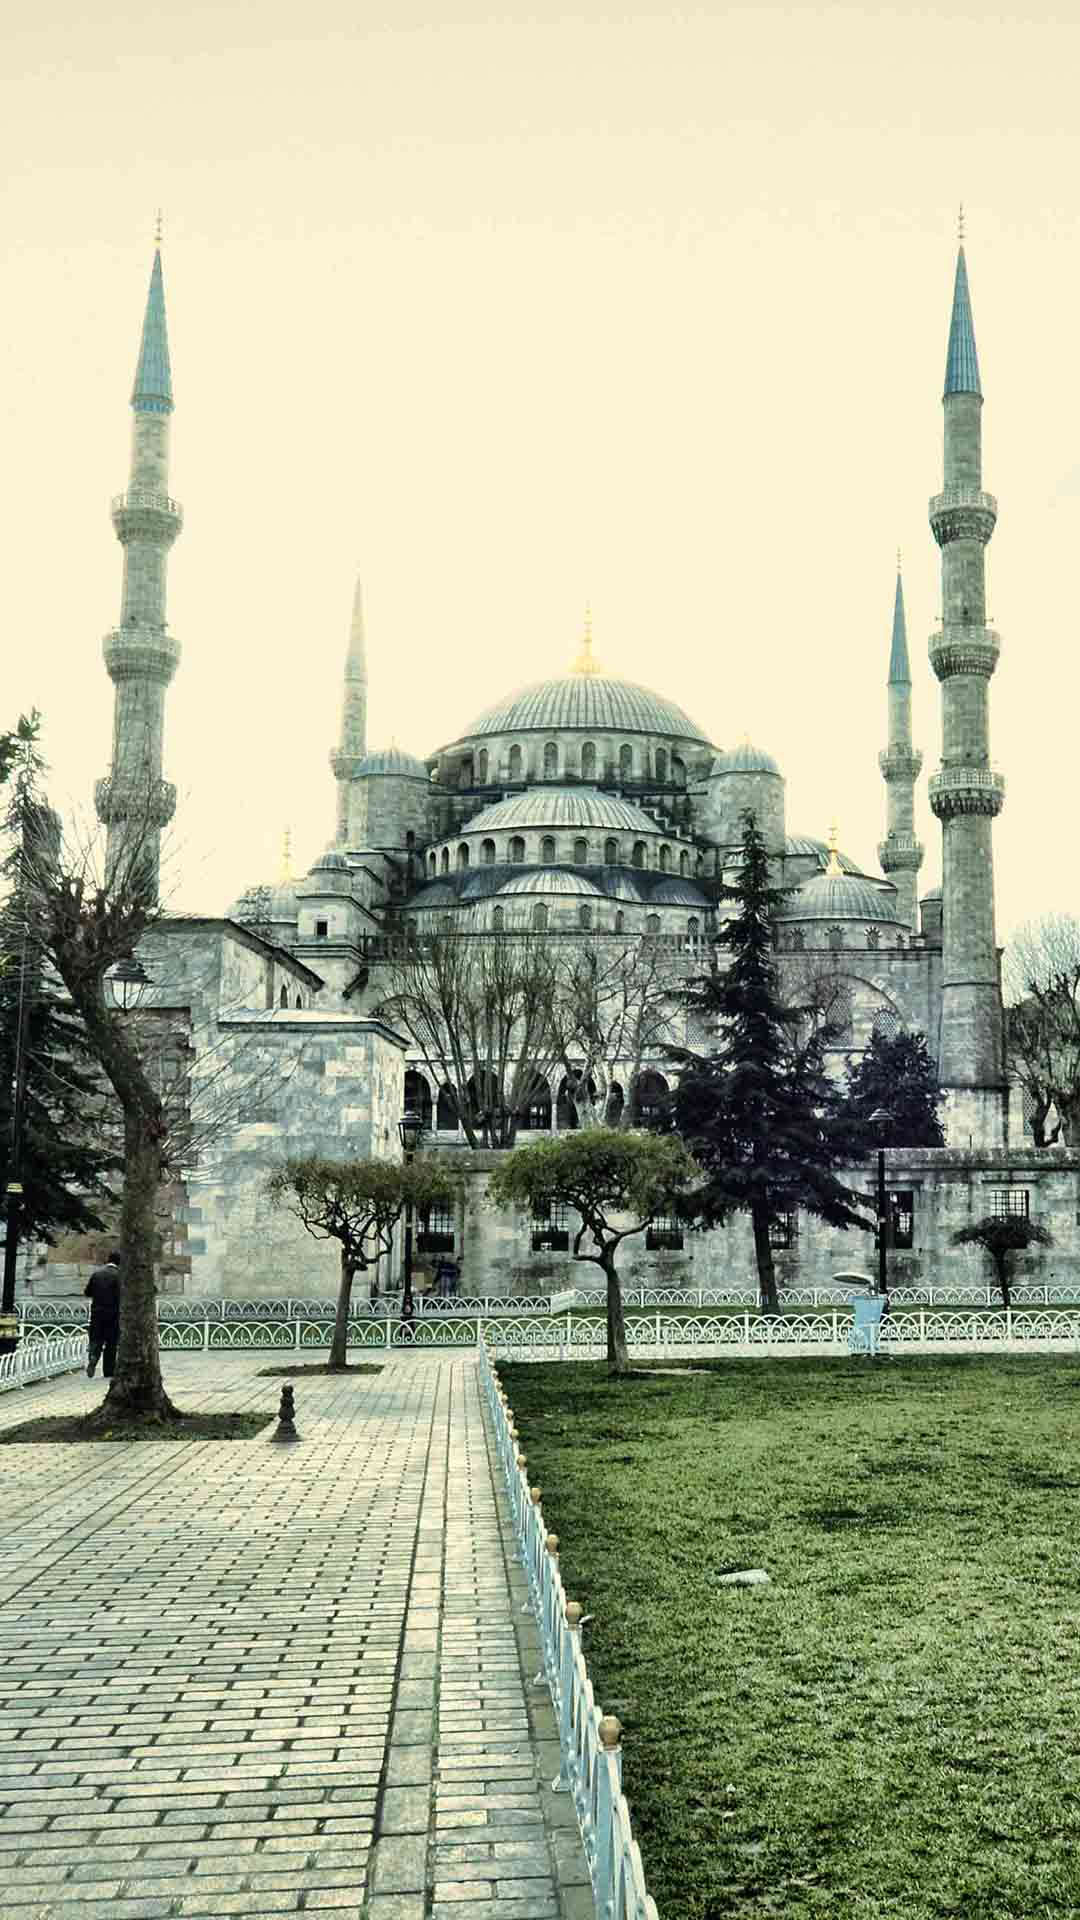 Quotes Wallpaper For Iphone 5c Turkey Sultan Ahmed Mosque Iphone Wallpaper Hd